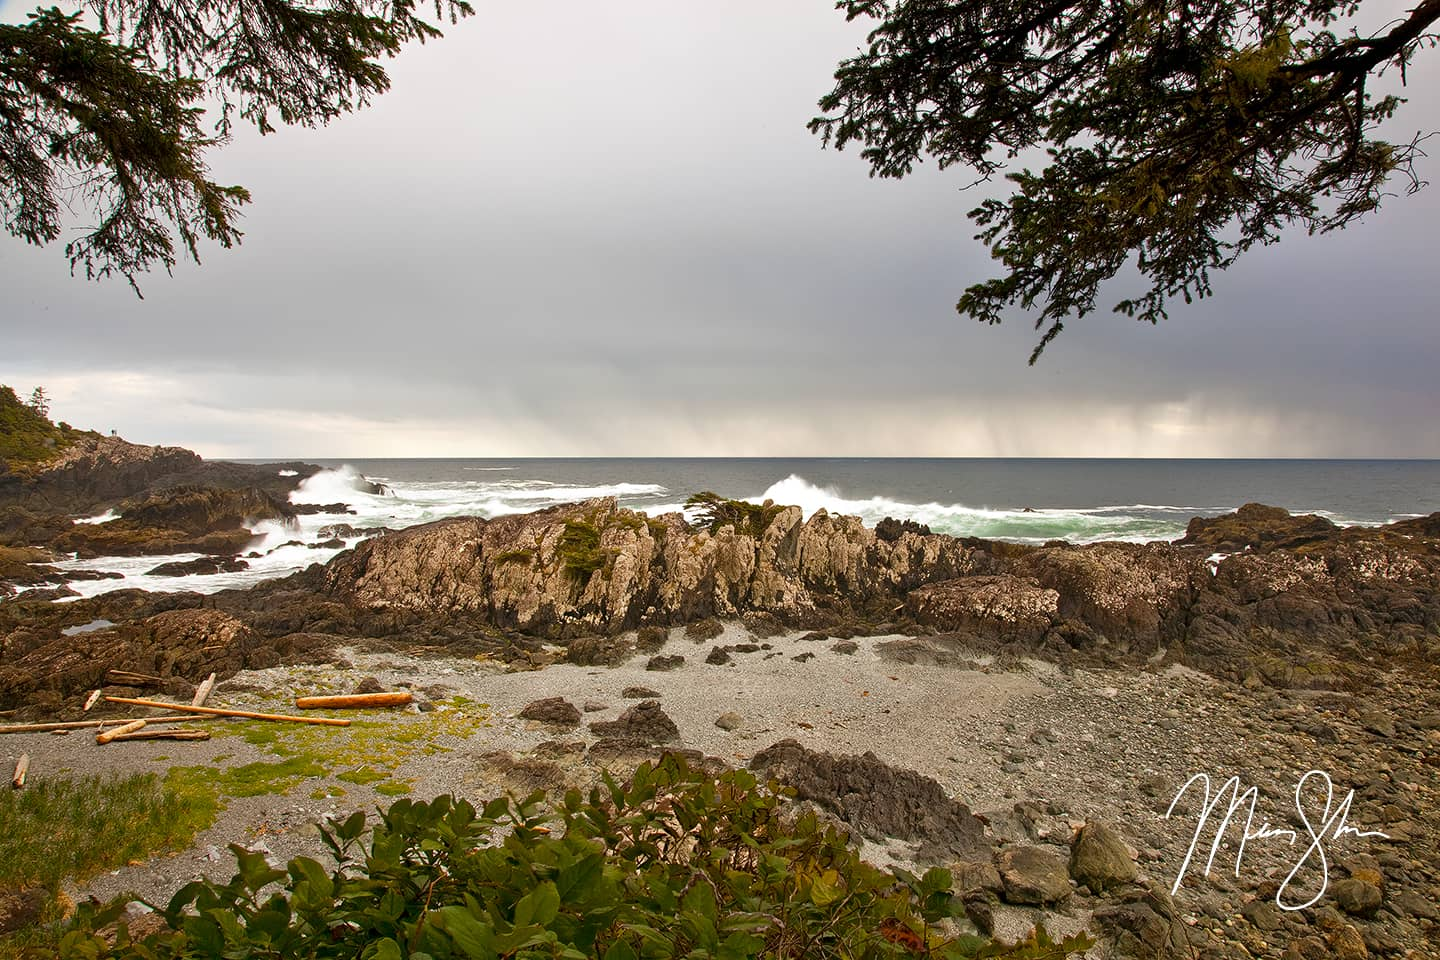 The Wild Pacific - Ucluelet, Vancouver Island, British Columbia Canada